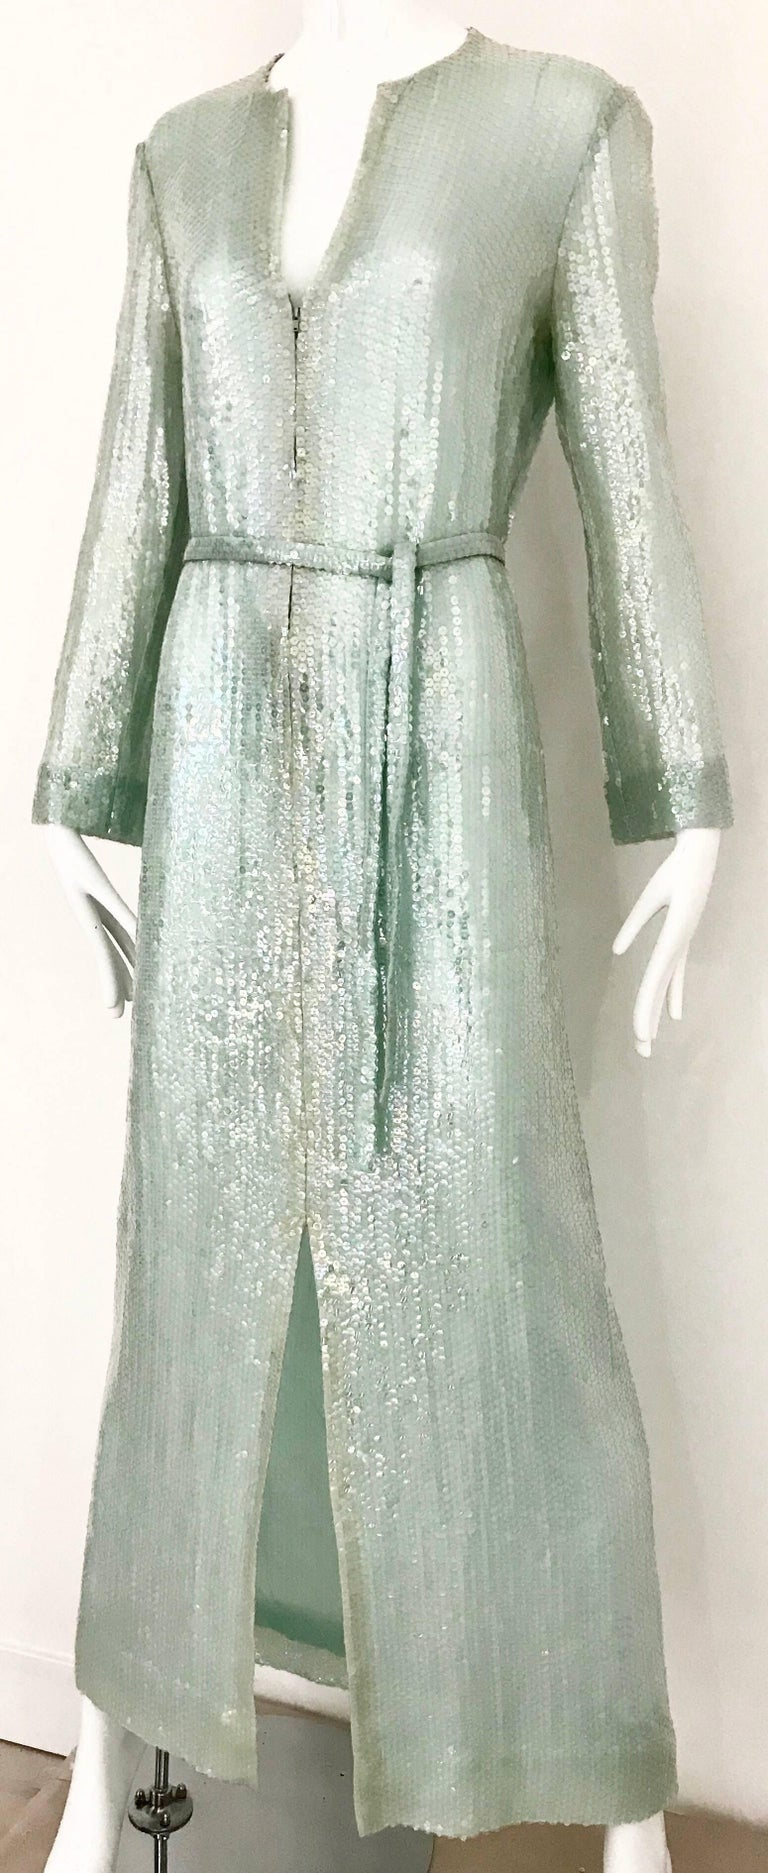 1970s HALSTON Minty Green Iridescent Sequin Kaftan Dress  In Good Condition For Sale In Beverly Hills, CA